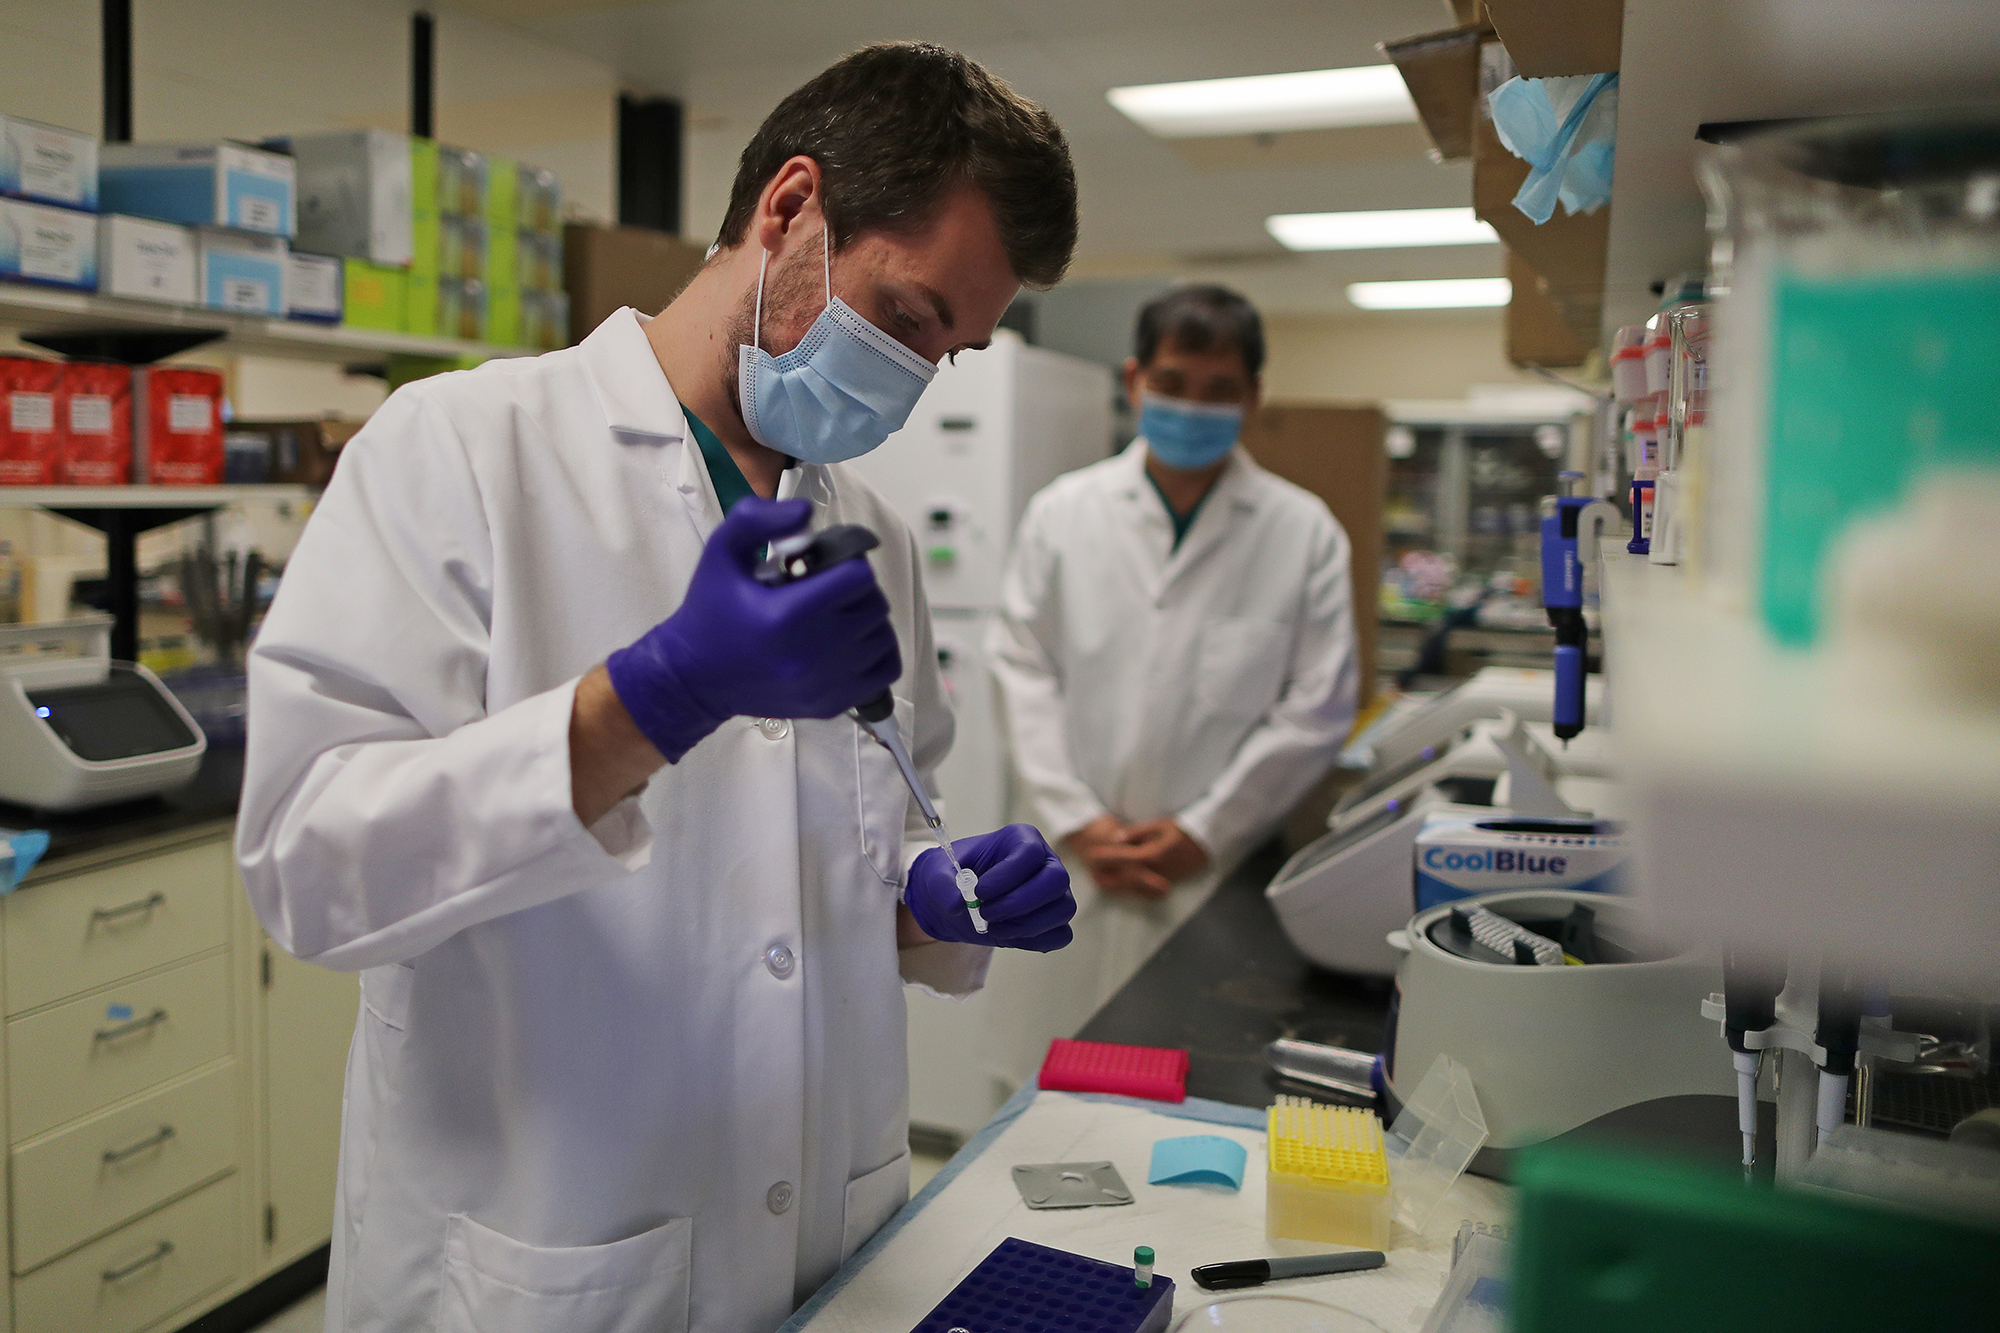 In this August 5 file photo, a lab technician prepares a solution that will be used to process coronavirus test samples at Advagenix, a molecular diagnostics laboratory, in Rockville, Maryland.